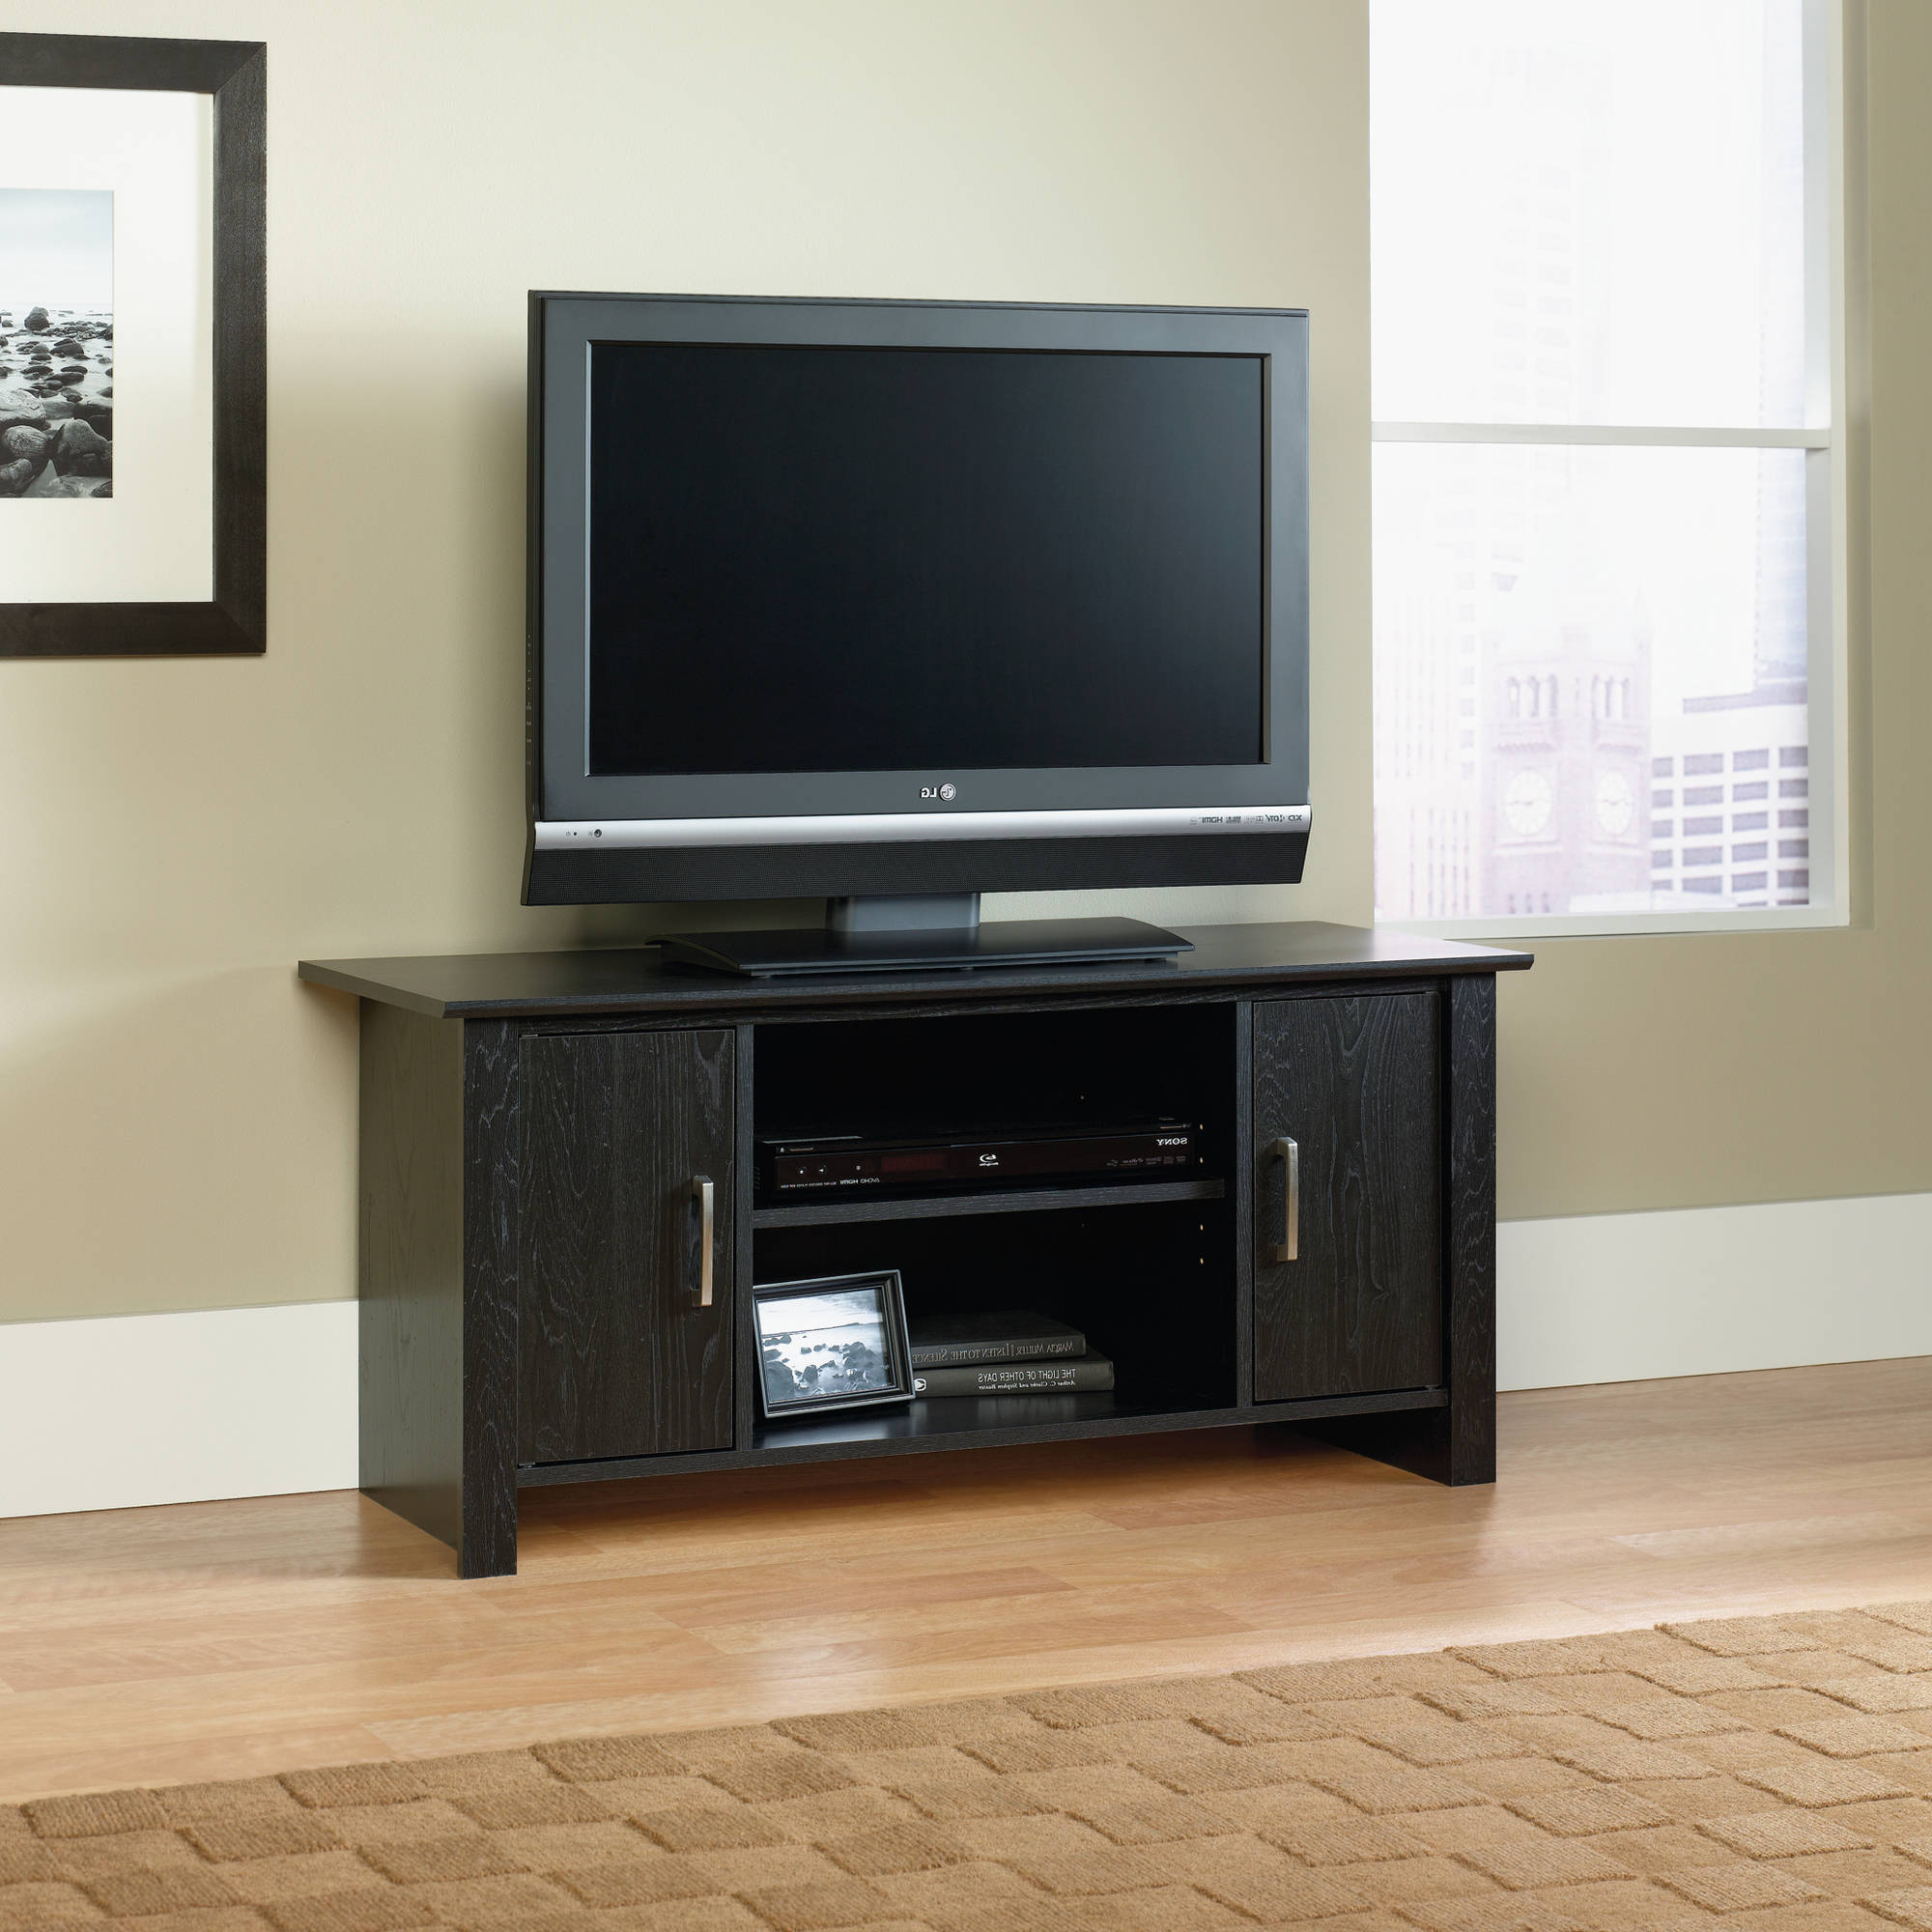 85 Inch Tv Stand Fresh Living Room White And Wood Unit Painted Ideas Throughout Most Popular Long Tv Stands Furniture (Gallery 11 of 20)